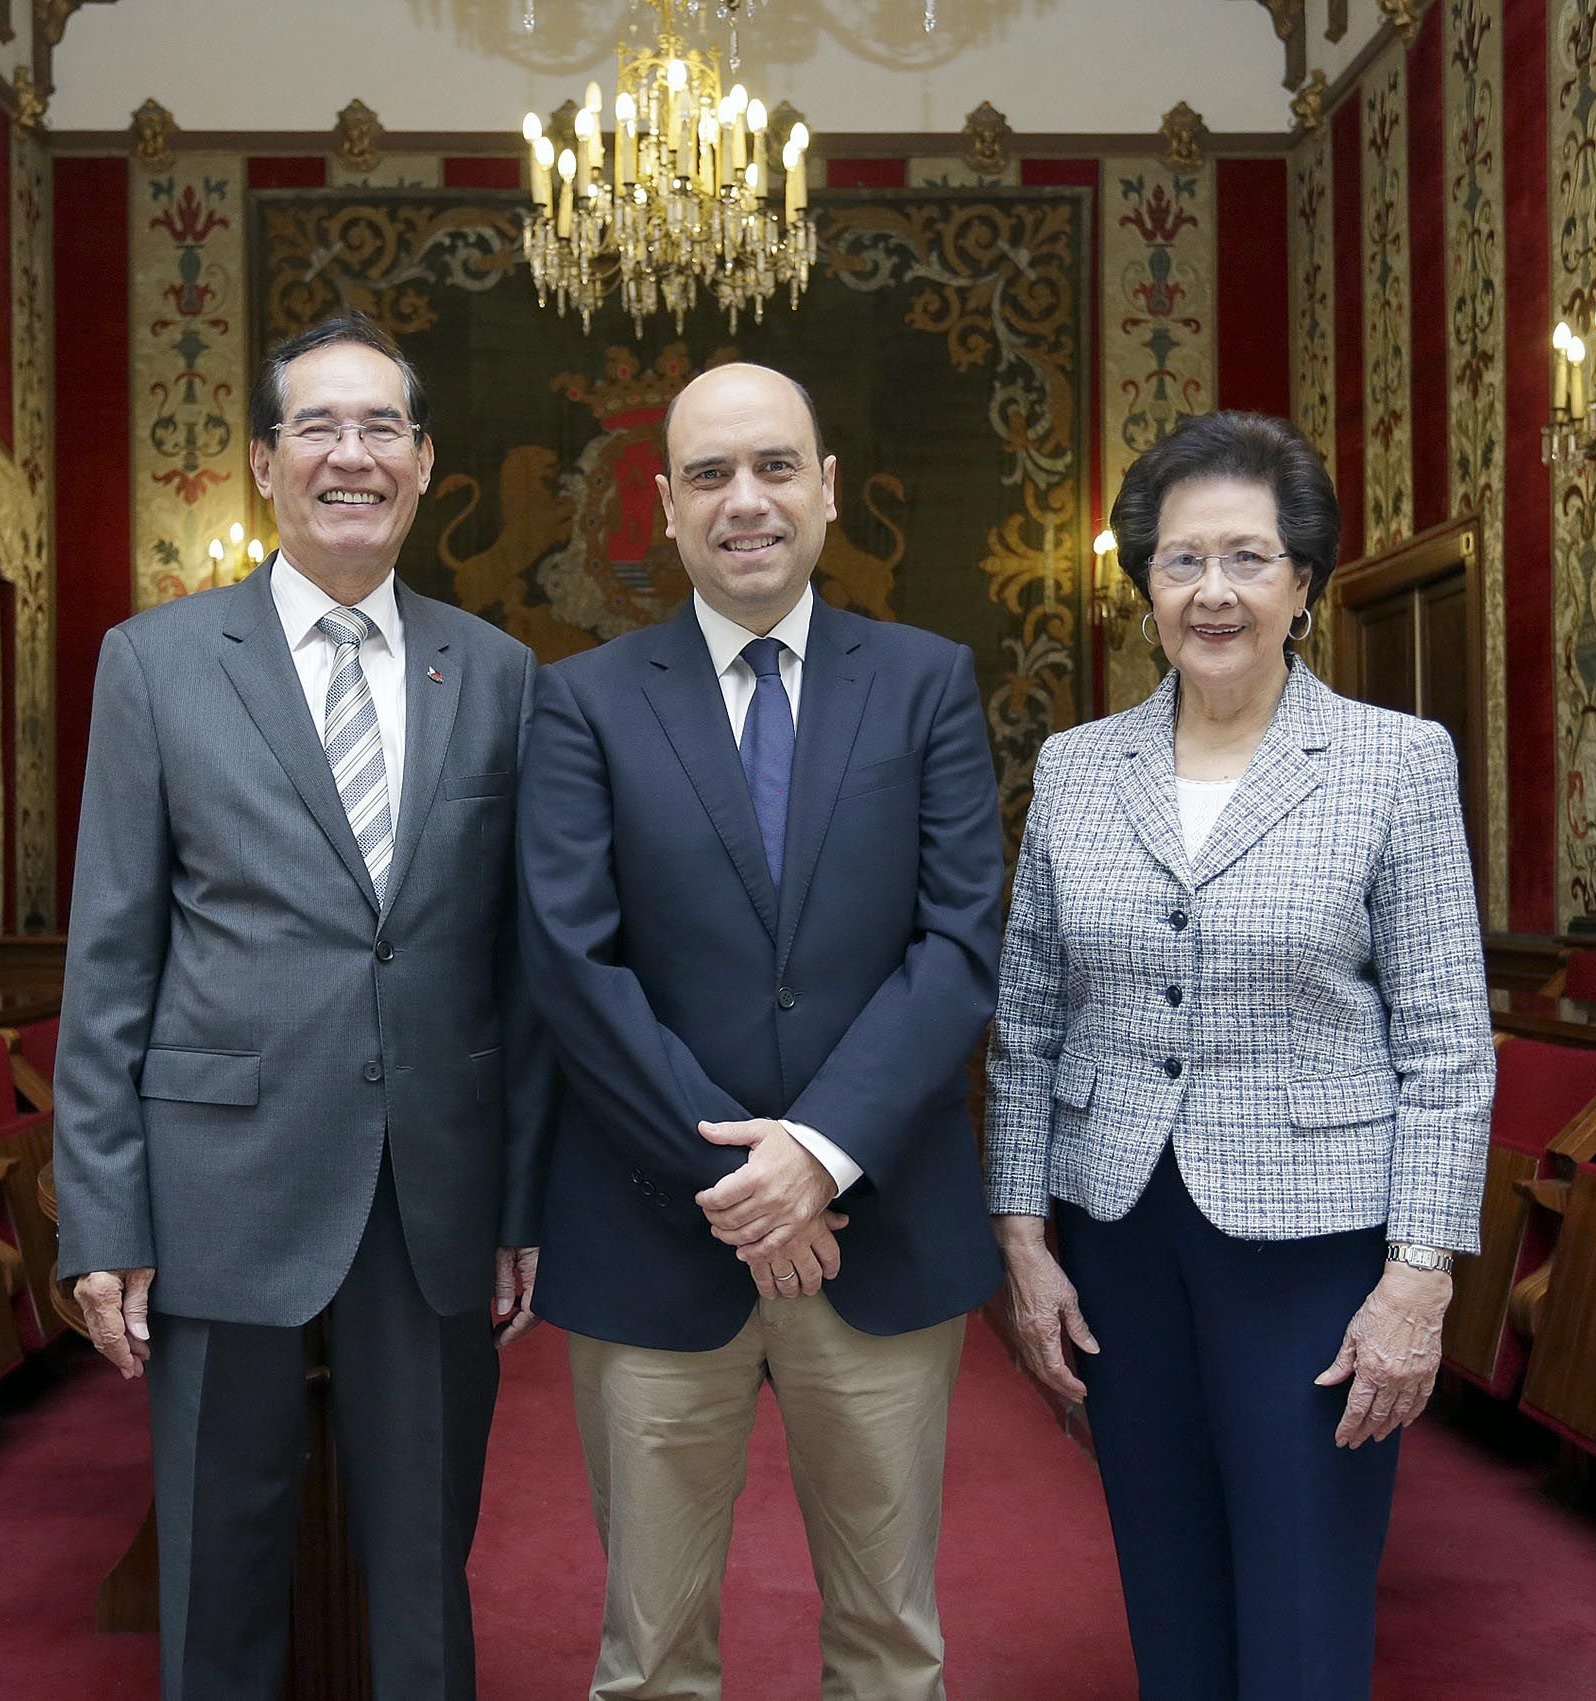 Photo courtesy of the Ayuntamiento de Alicante. L-R. Ambassador Carlos C. Salinas, Mayor Gabriel Echavarrí, and Mrs. Isabelita T. Salinas.